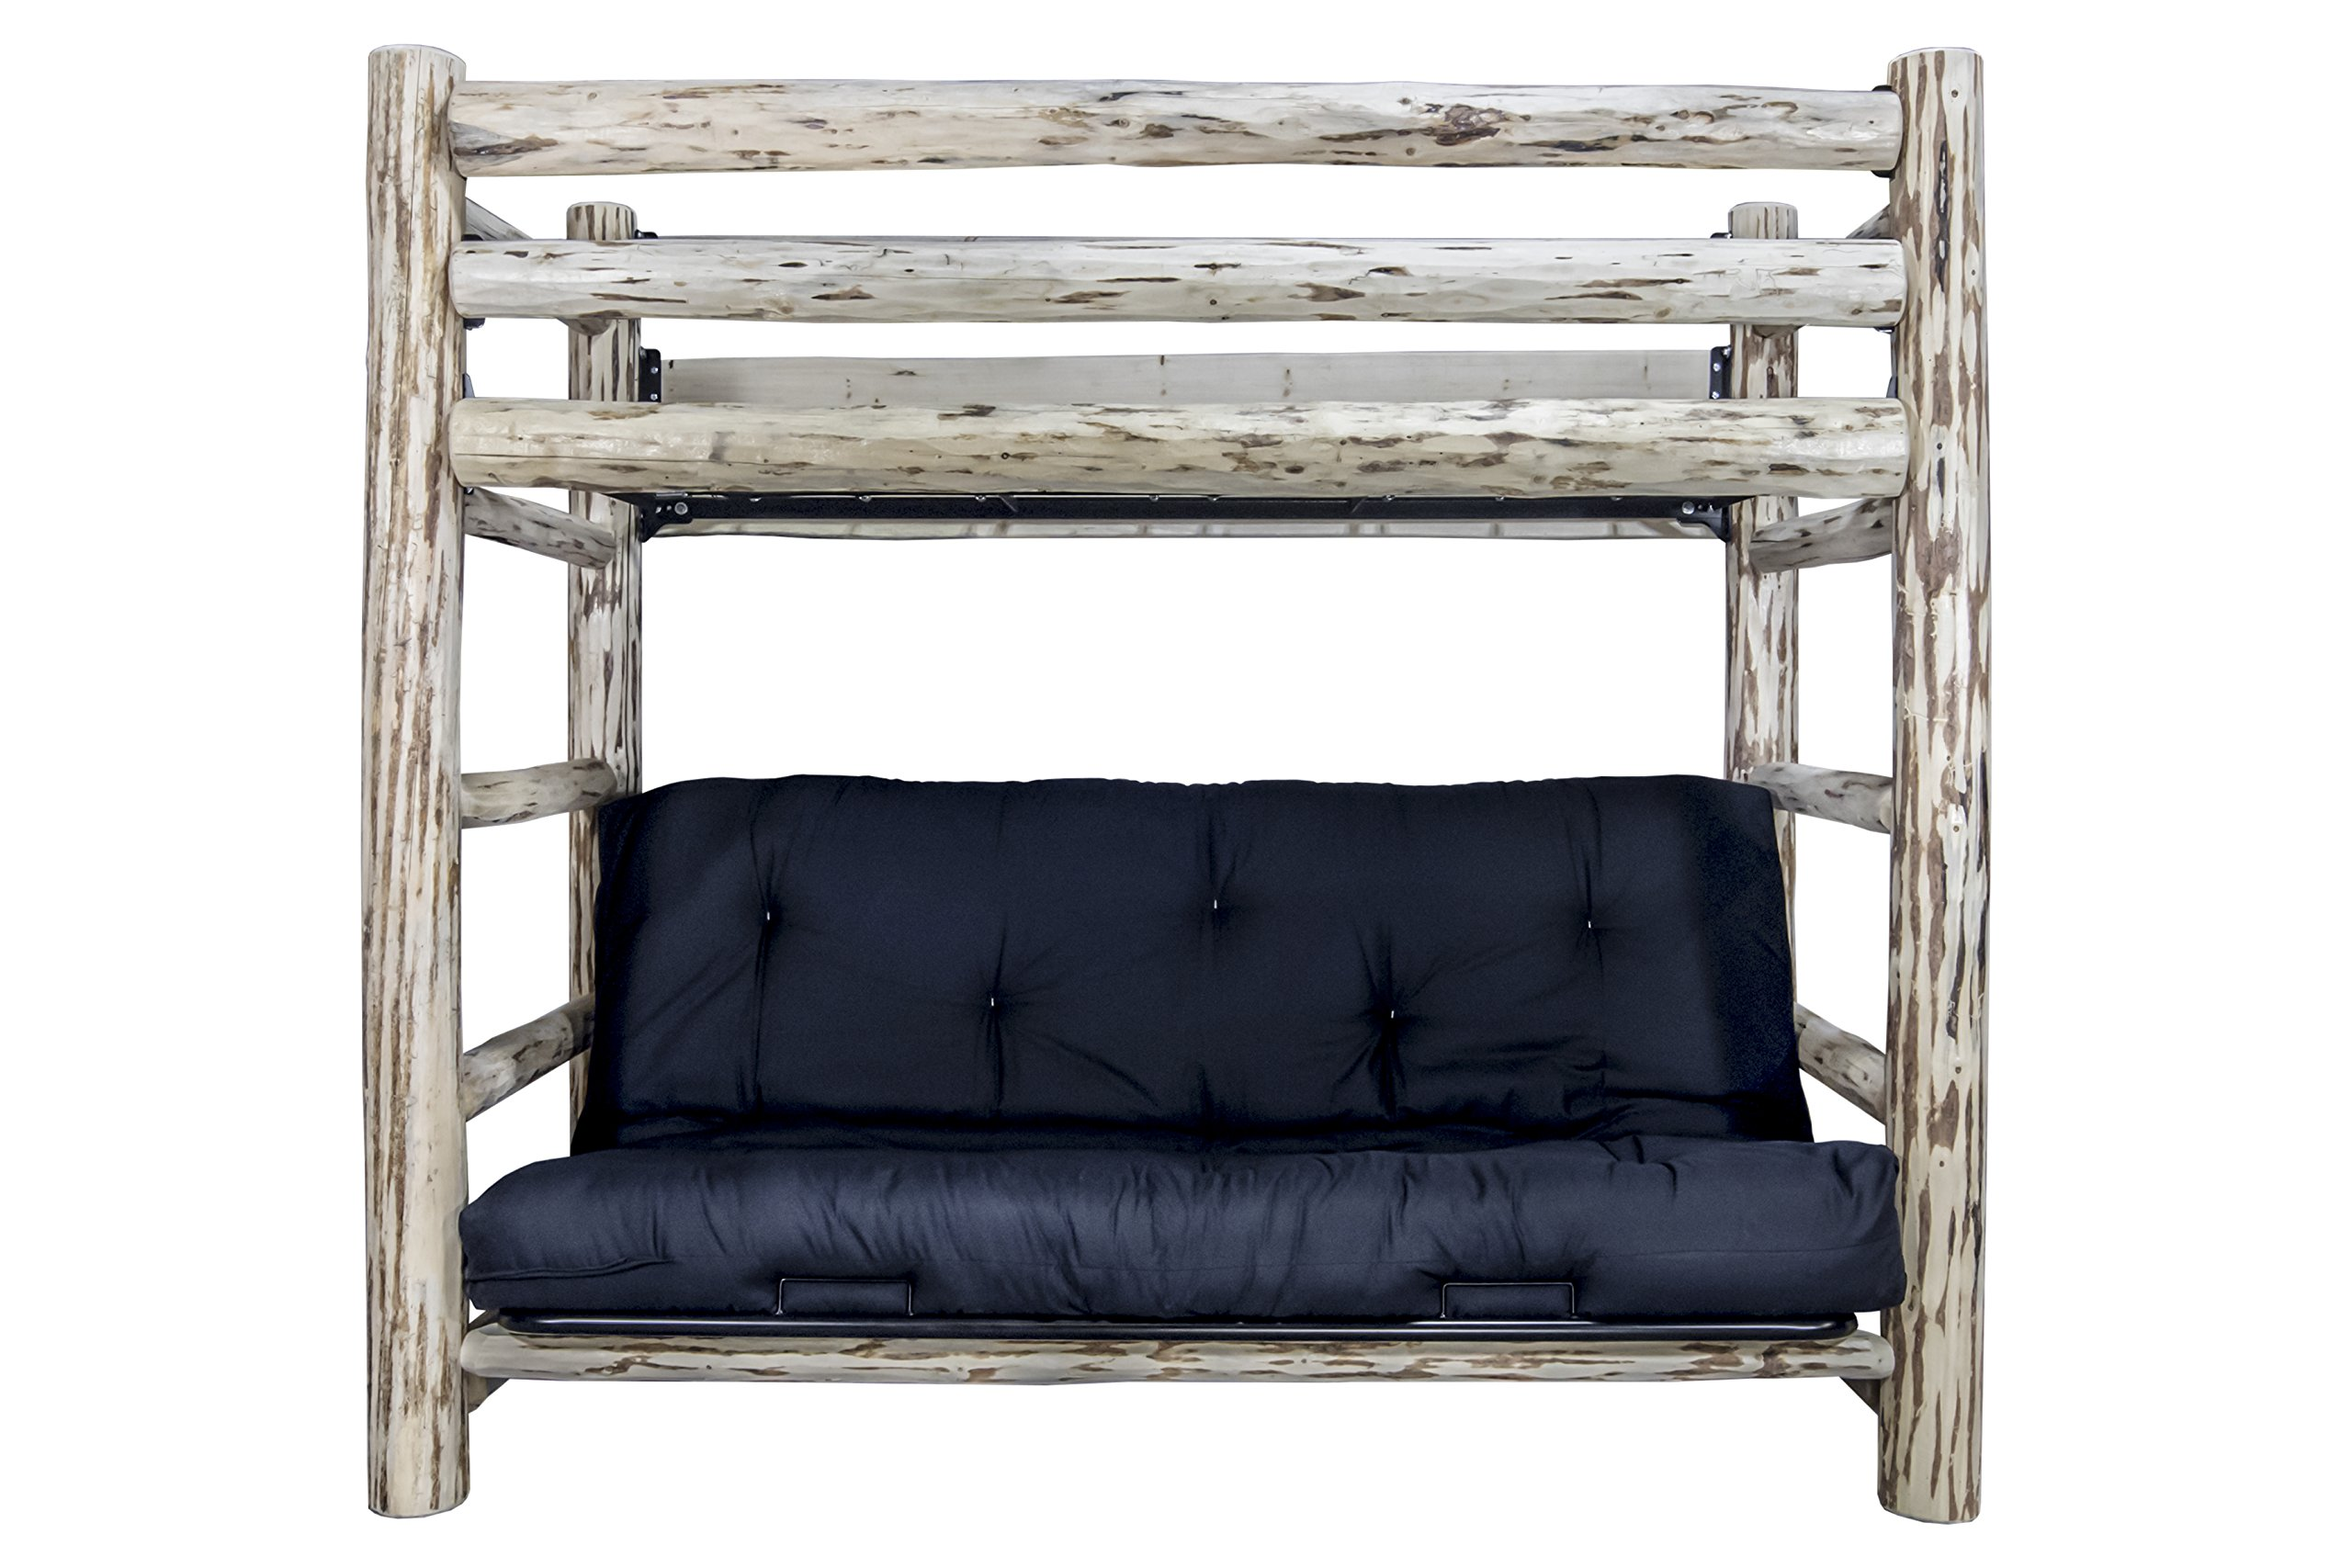 Montana Woodworks Montana Collection Twin Bunk Bed over Full Futon Frame with Mattress, Ready to Finish by Montana Woodworks